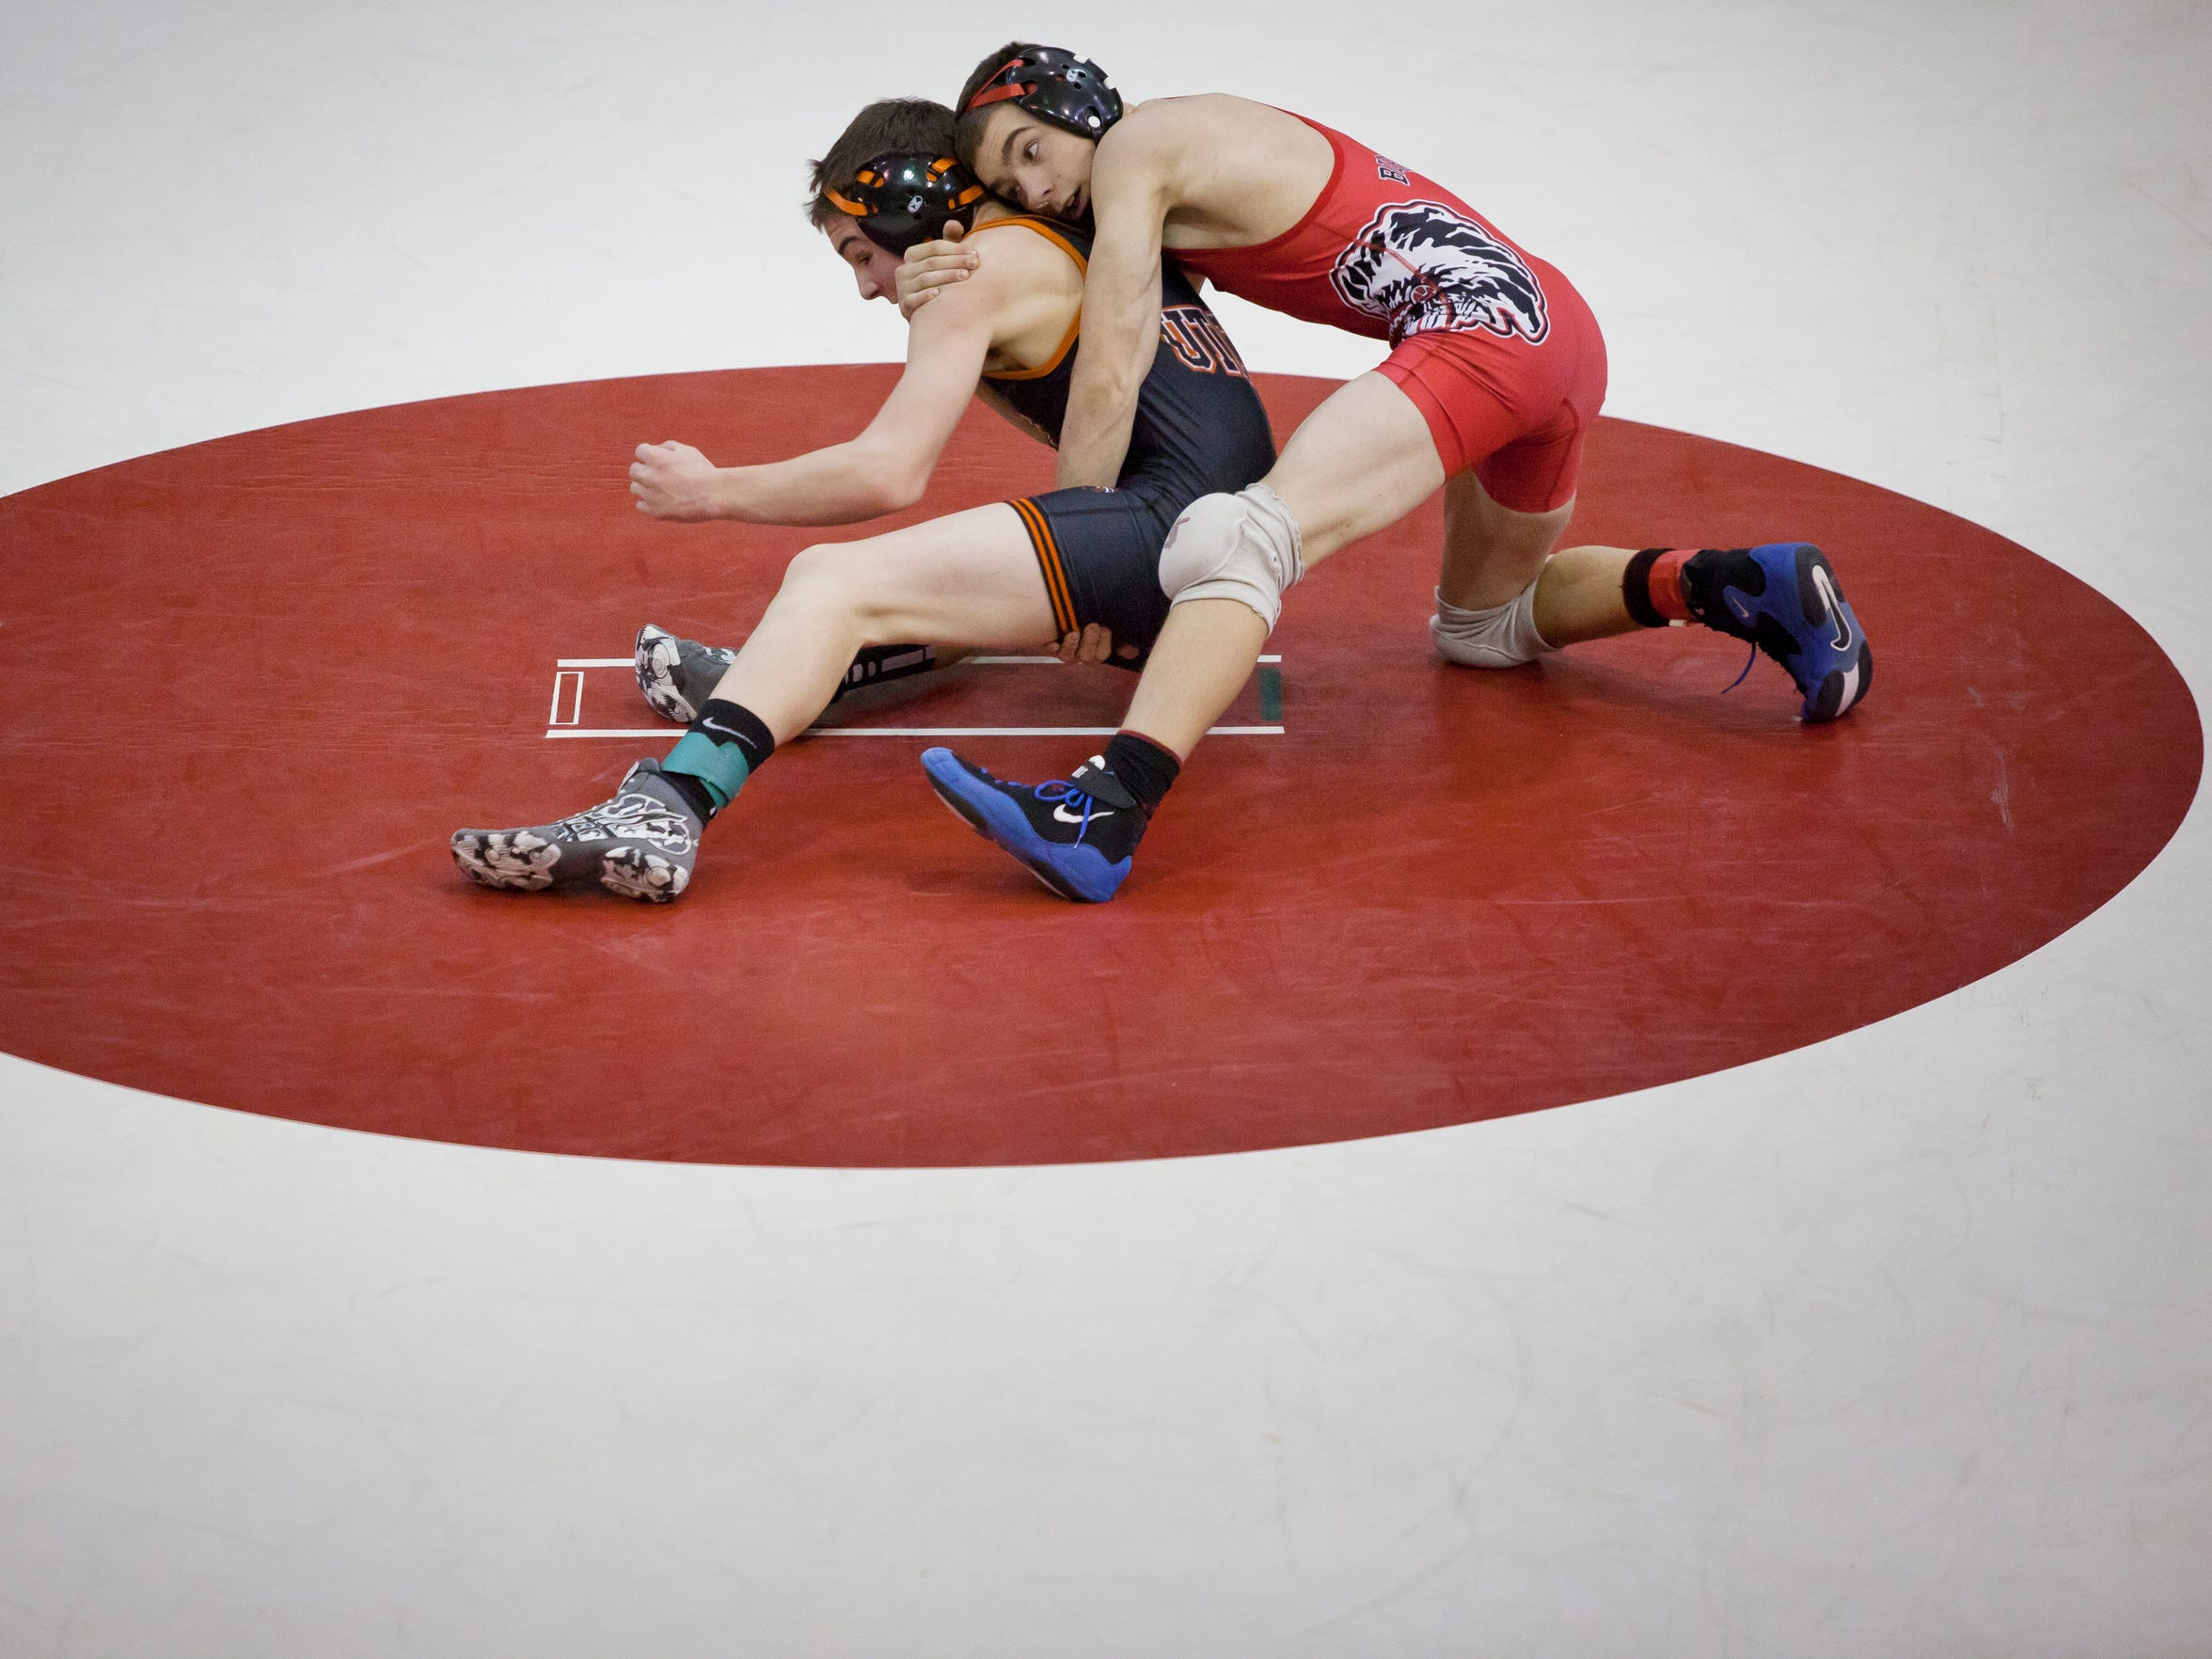 Port Huron's Doug Ferrier wrestles Utica's David Stemple Wednesday, Jan. 14, 2015 at Port Huron High School.